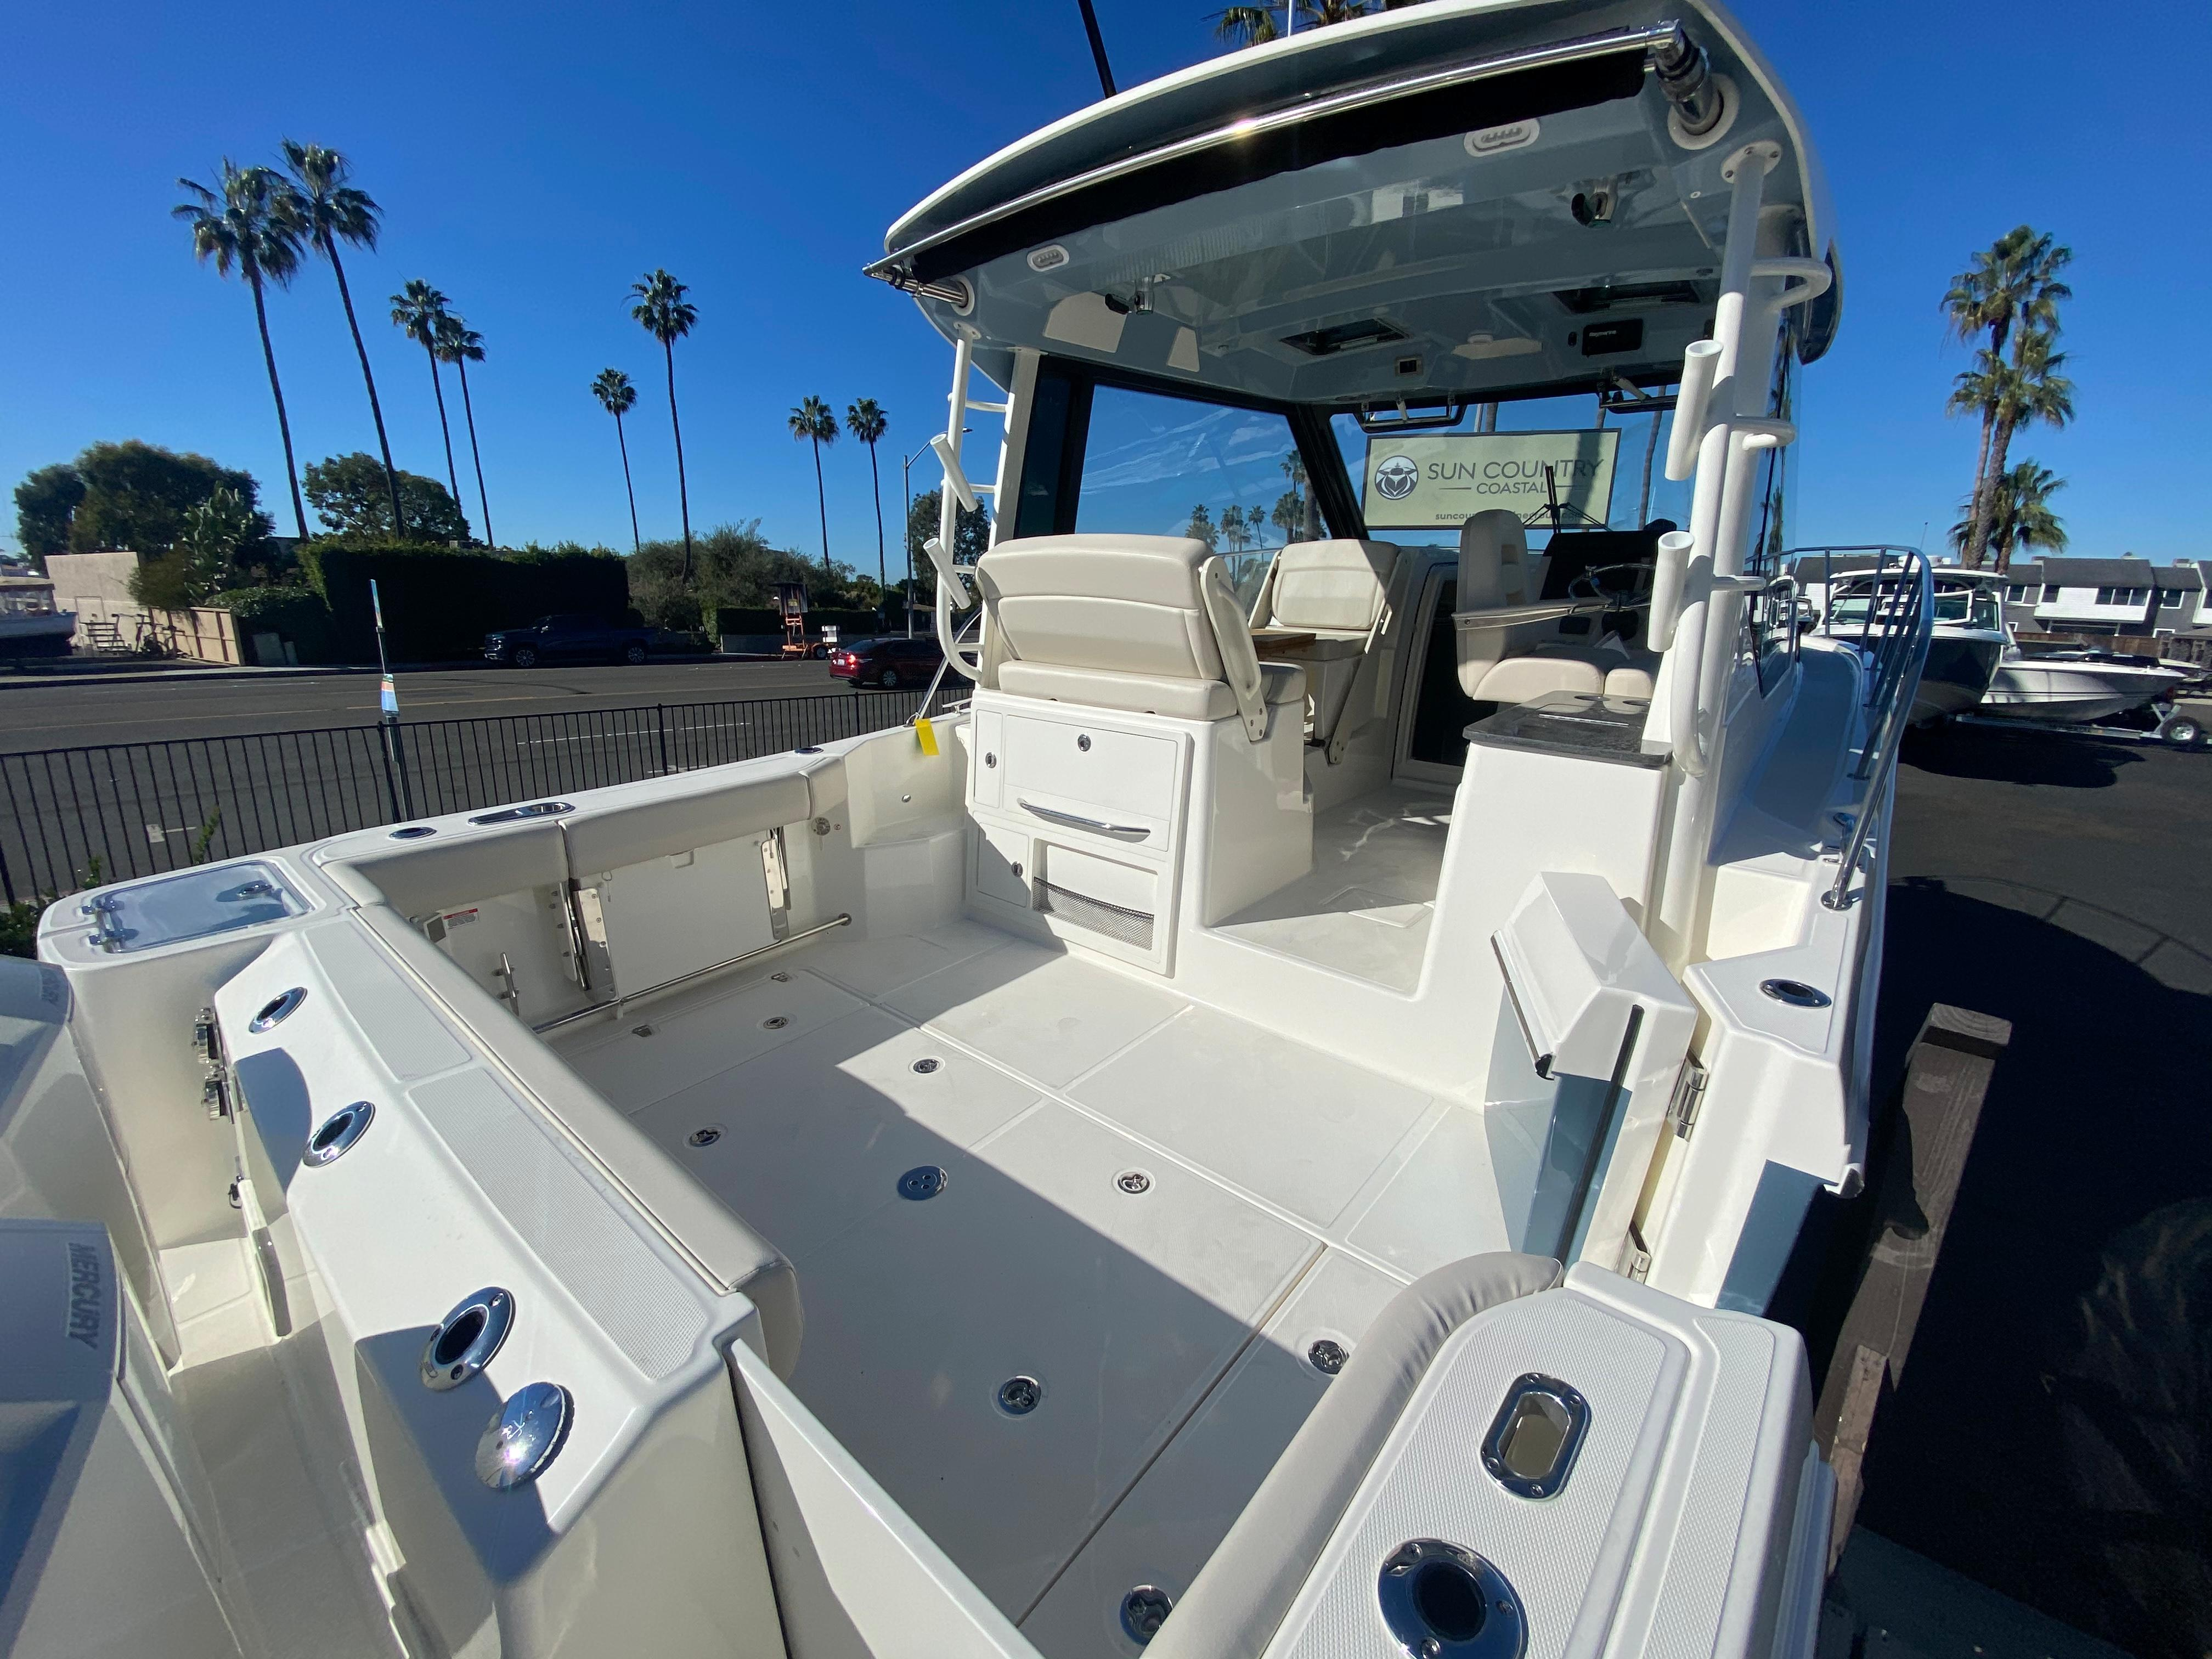 2021 Boston Whaler 325 Conquest #BW0960J inventory image at Sun Country Coastal in Newport Beach